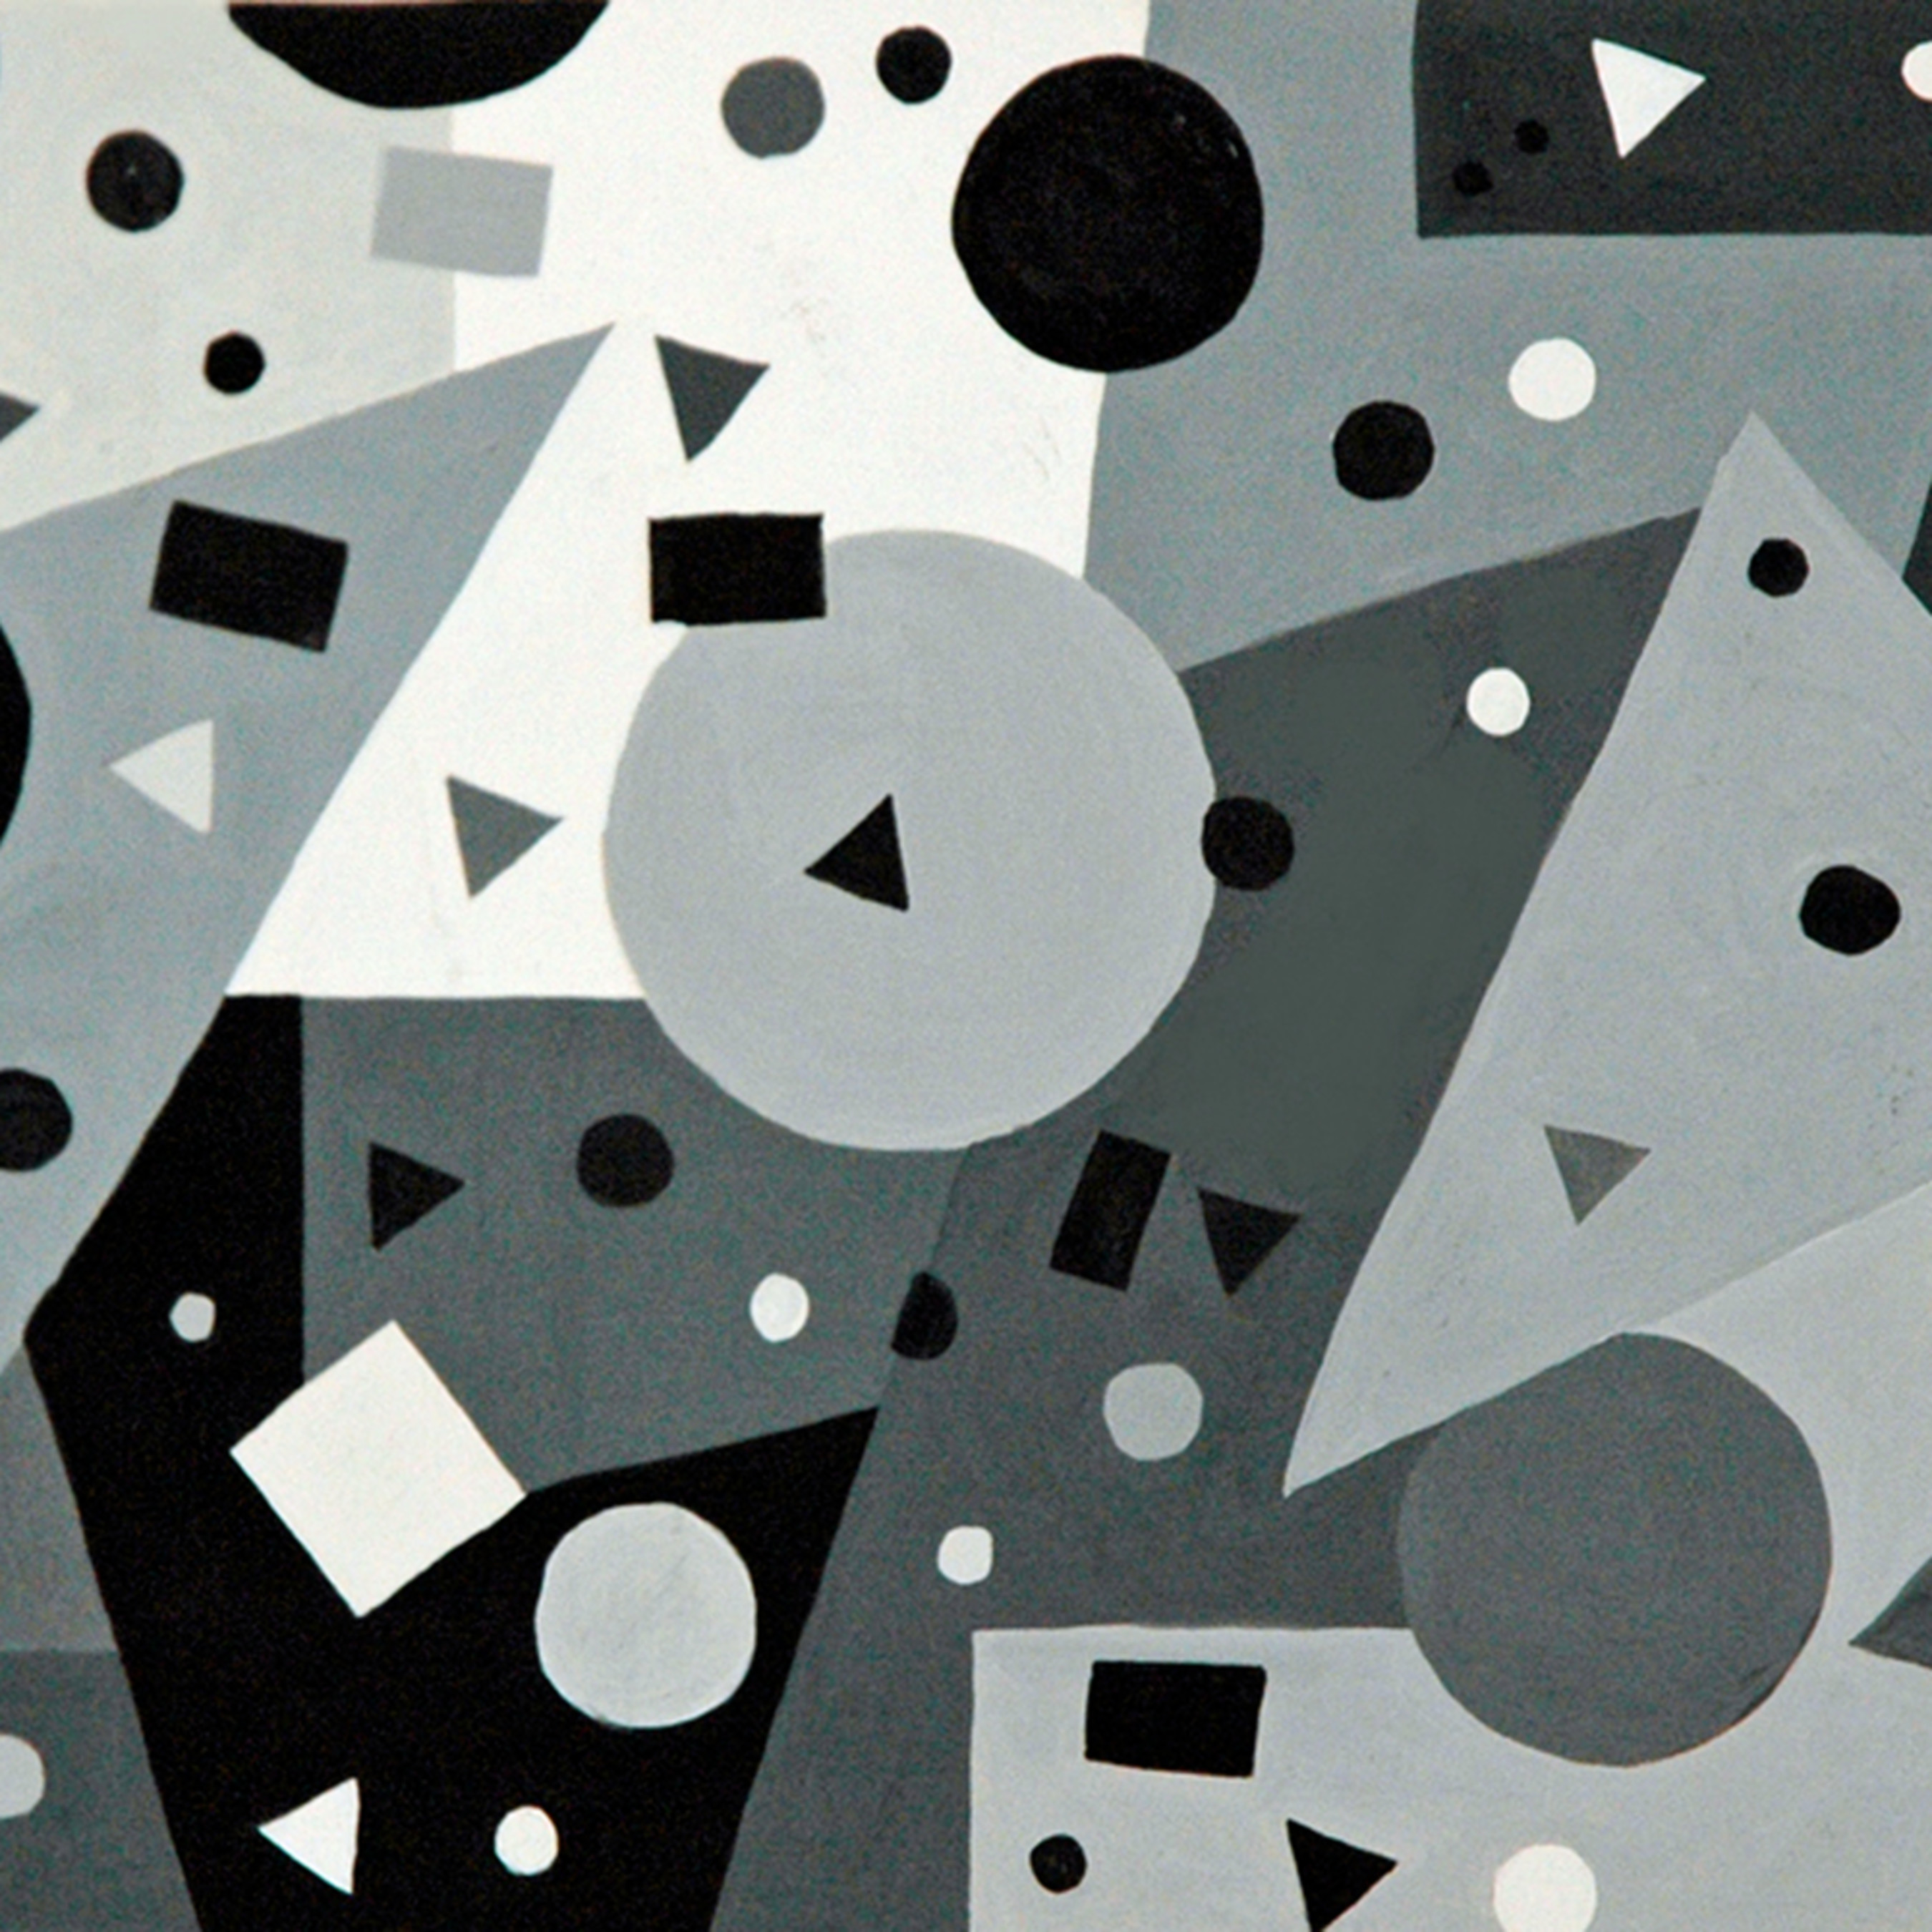 Shades of gray   9 22 x 16 22   gouache on paper mounted on board   resin coat ds6ask